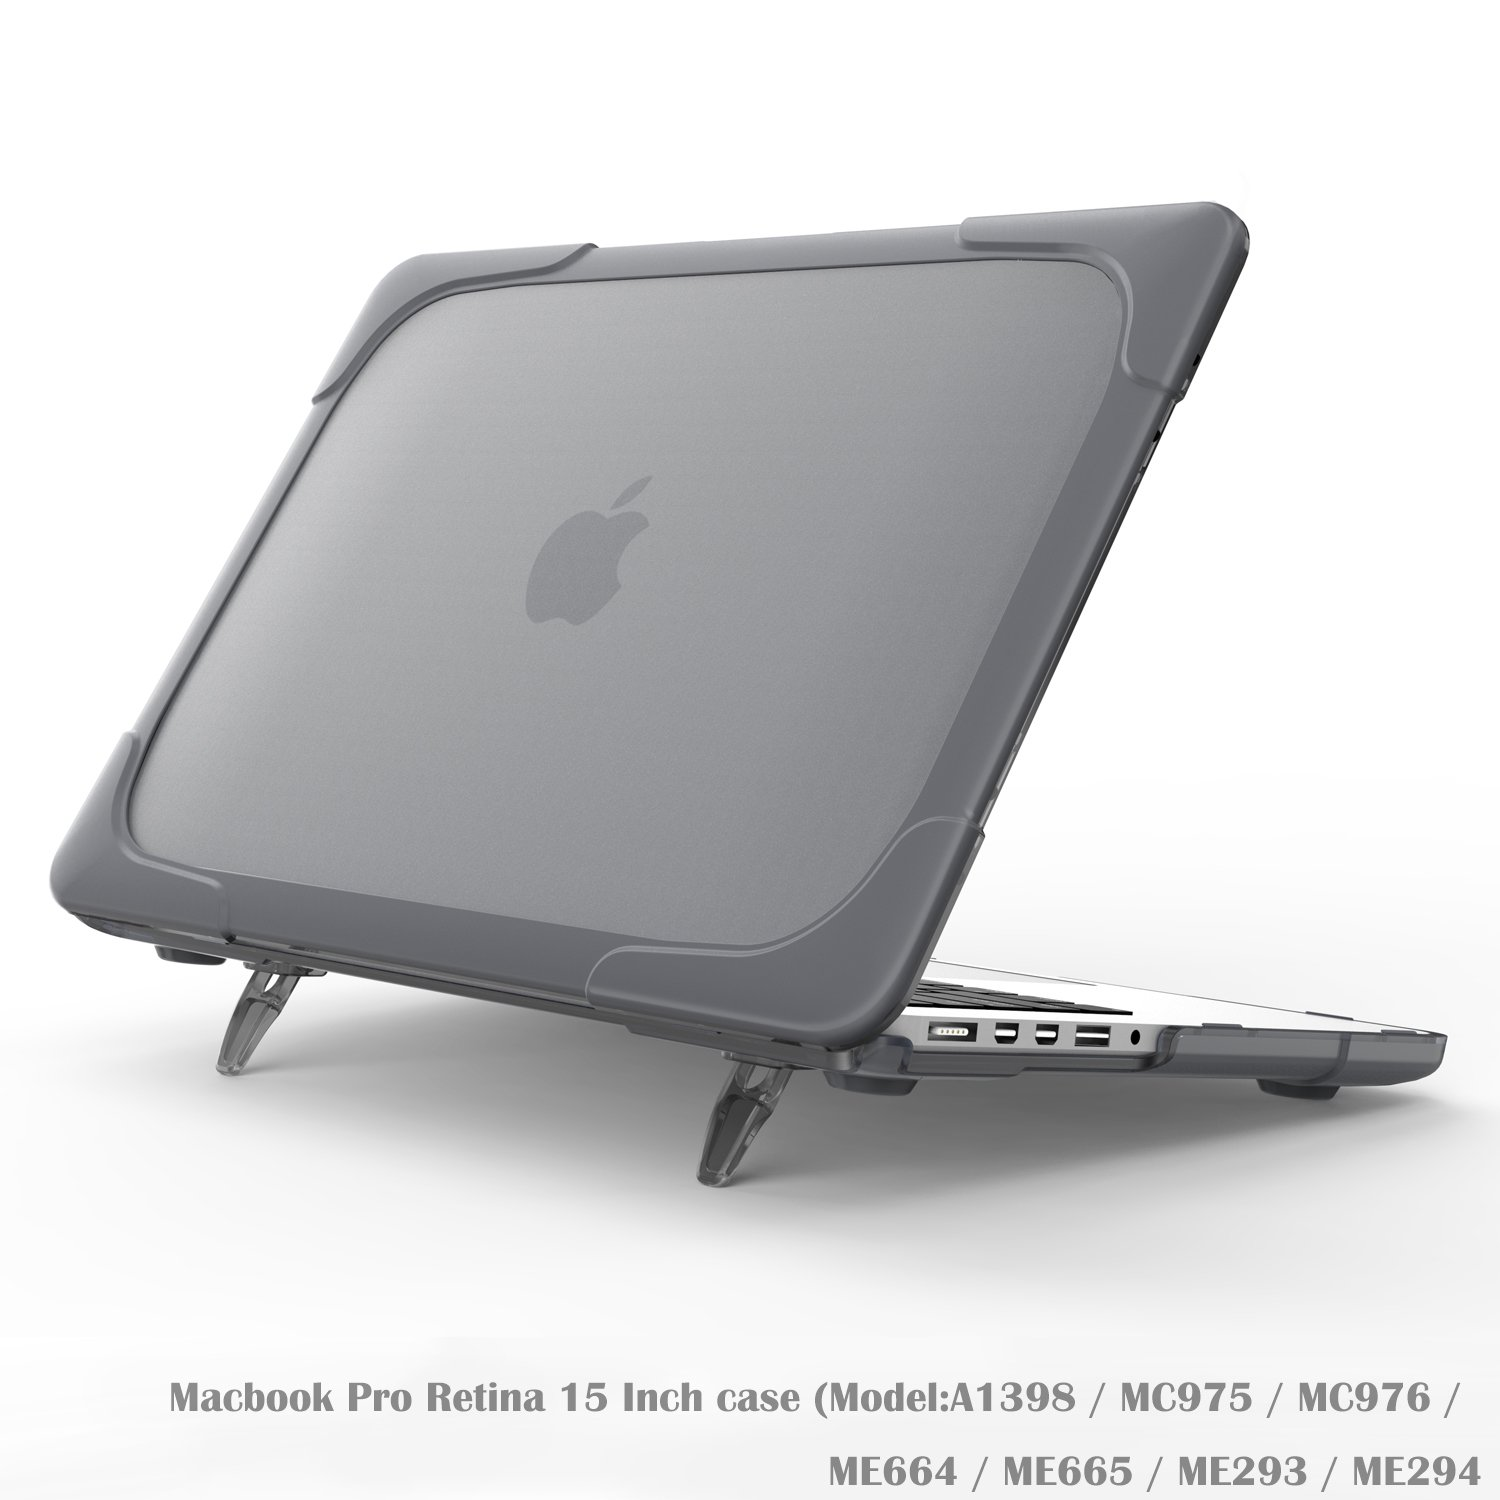 Wtiaw Compatible:Macbook Pro Retina 15 Inch case(NO CD-ROM,NO Touch Bar),[Heavy Duty] [Dual Layer] Hard Case Cover with breathe and cool itself freely TPU Bumper Cover (Model:A1398)-Gray